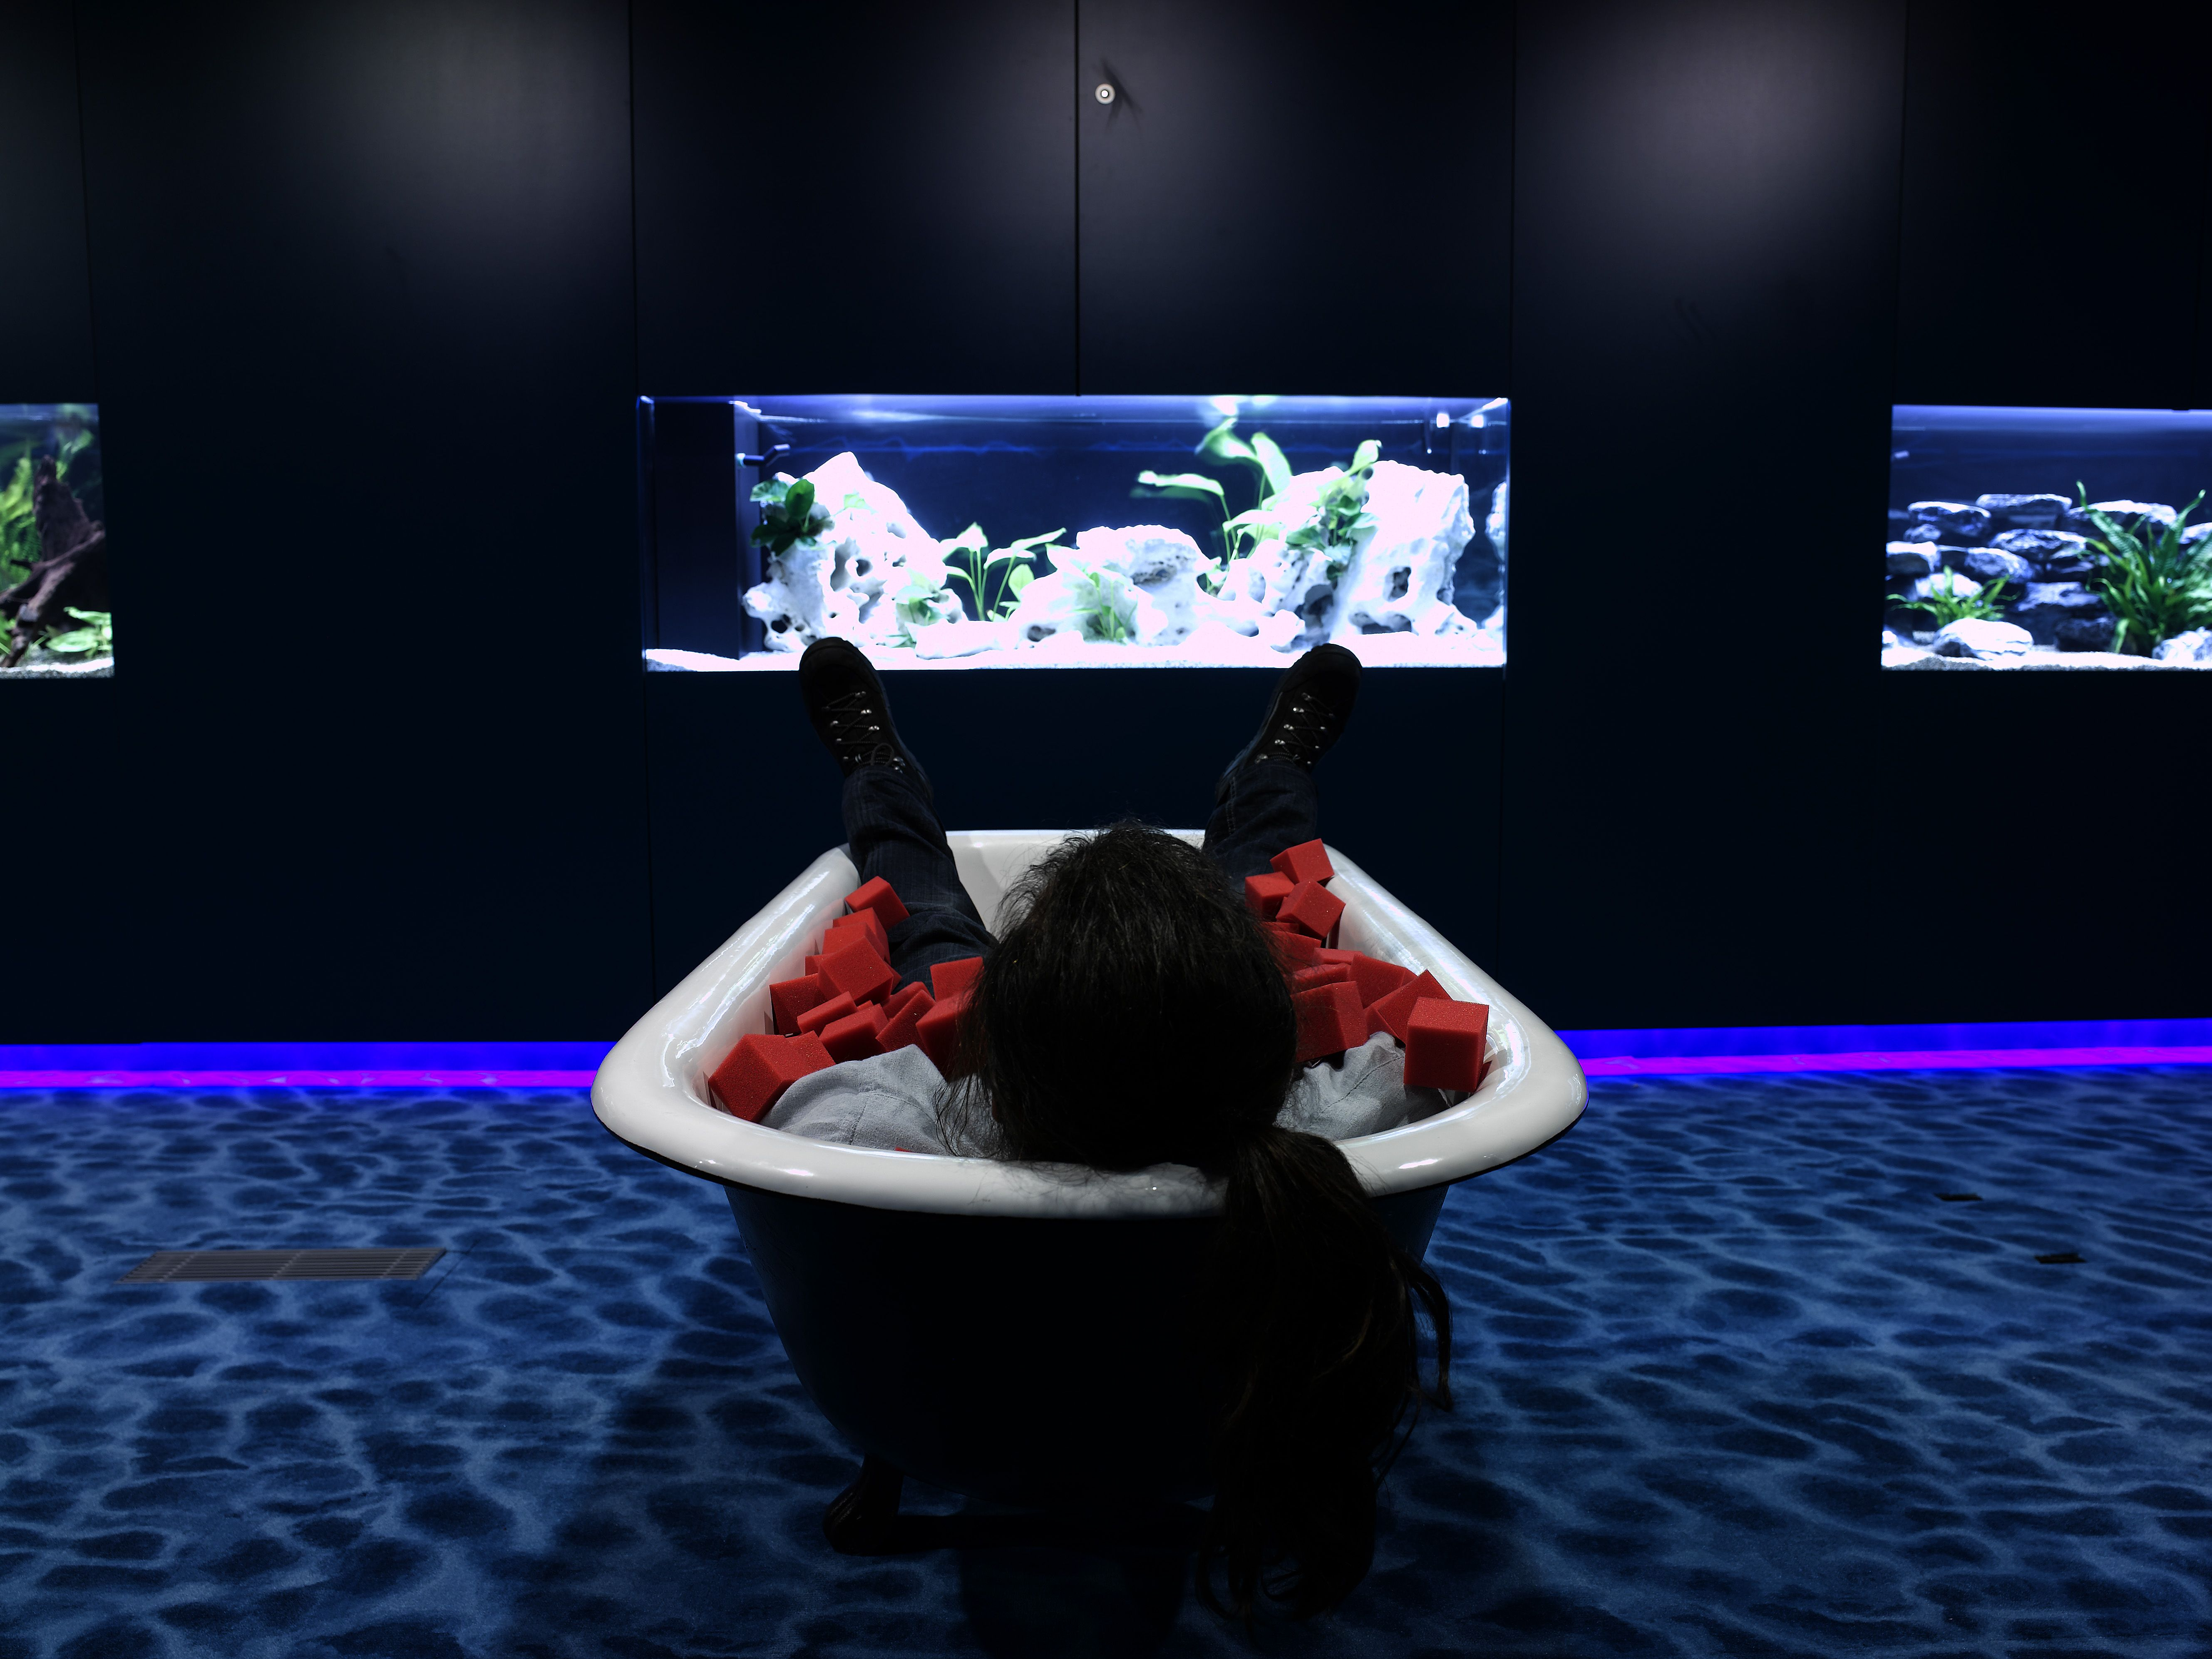 Google office zurich water lounge regenerate at workplace